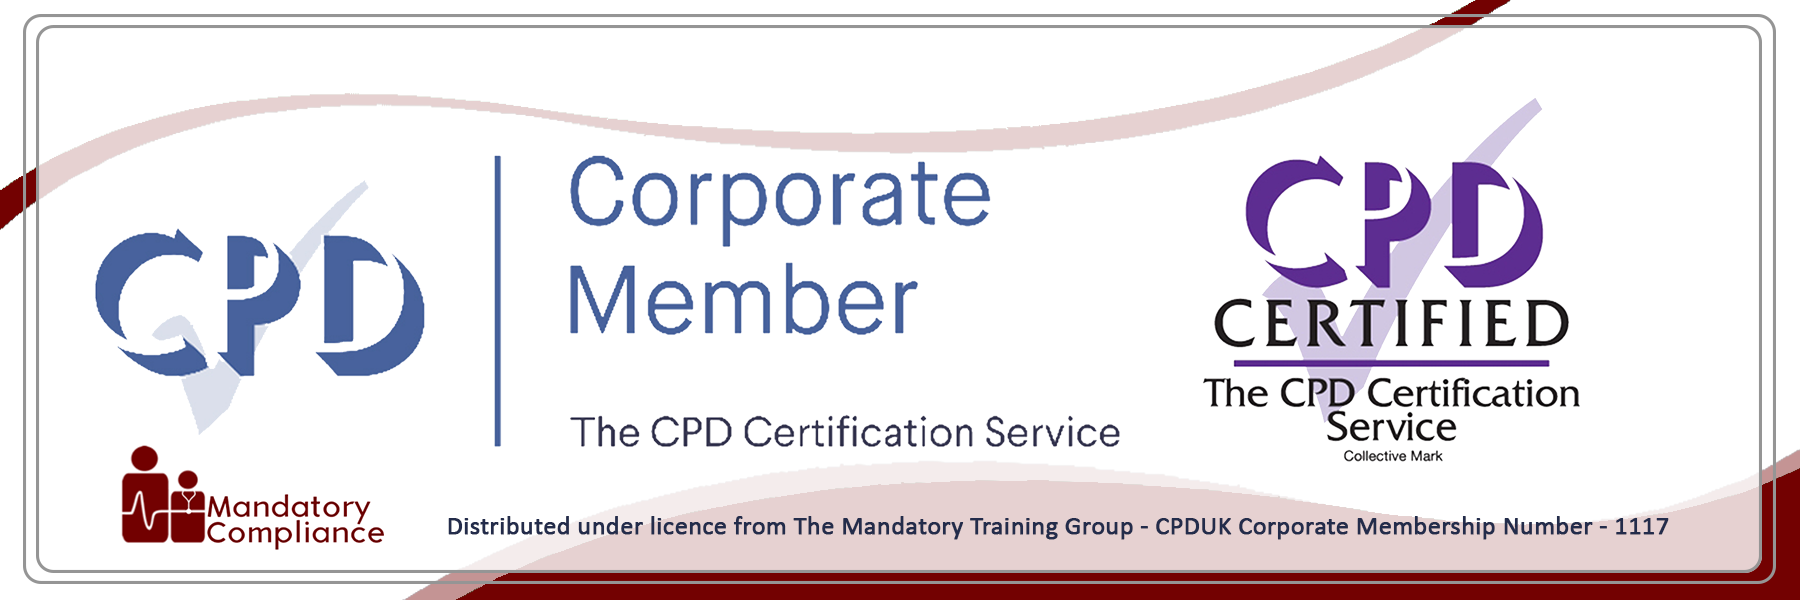 Child Immunisation - E-Learning Courses - Mandatory Compliance UK -